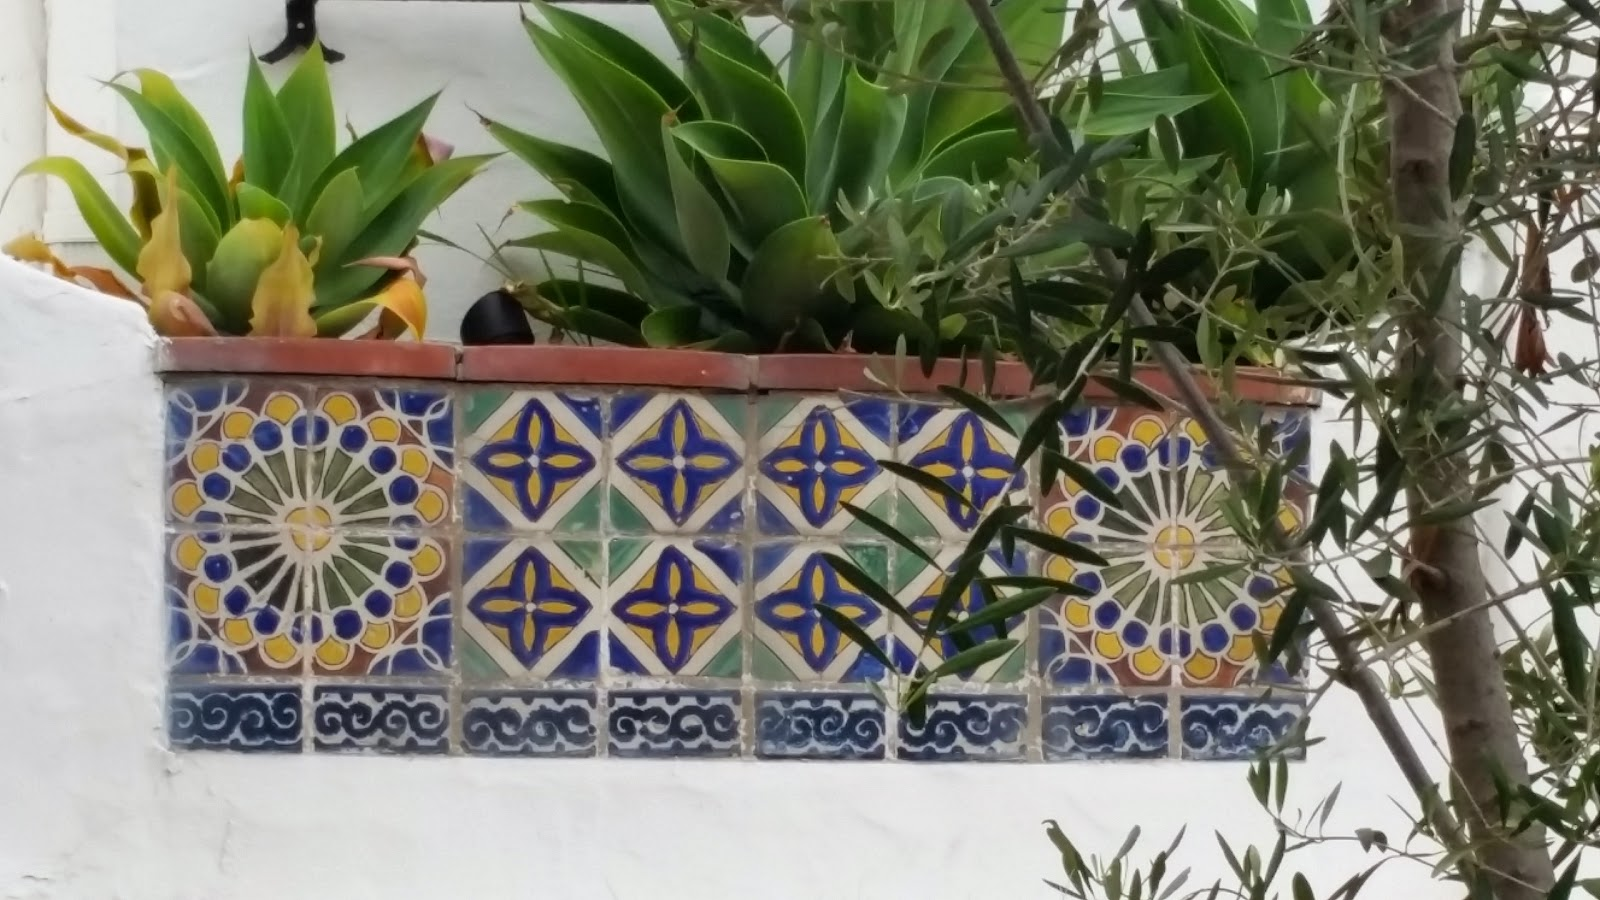 Tiles patterns on this planter box are Spanish and Moorish influenced.